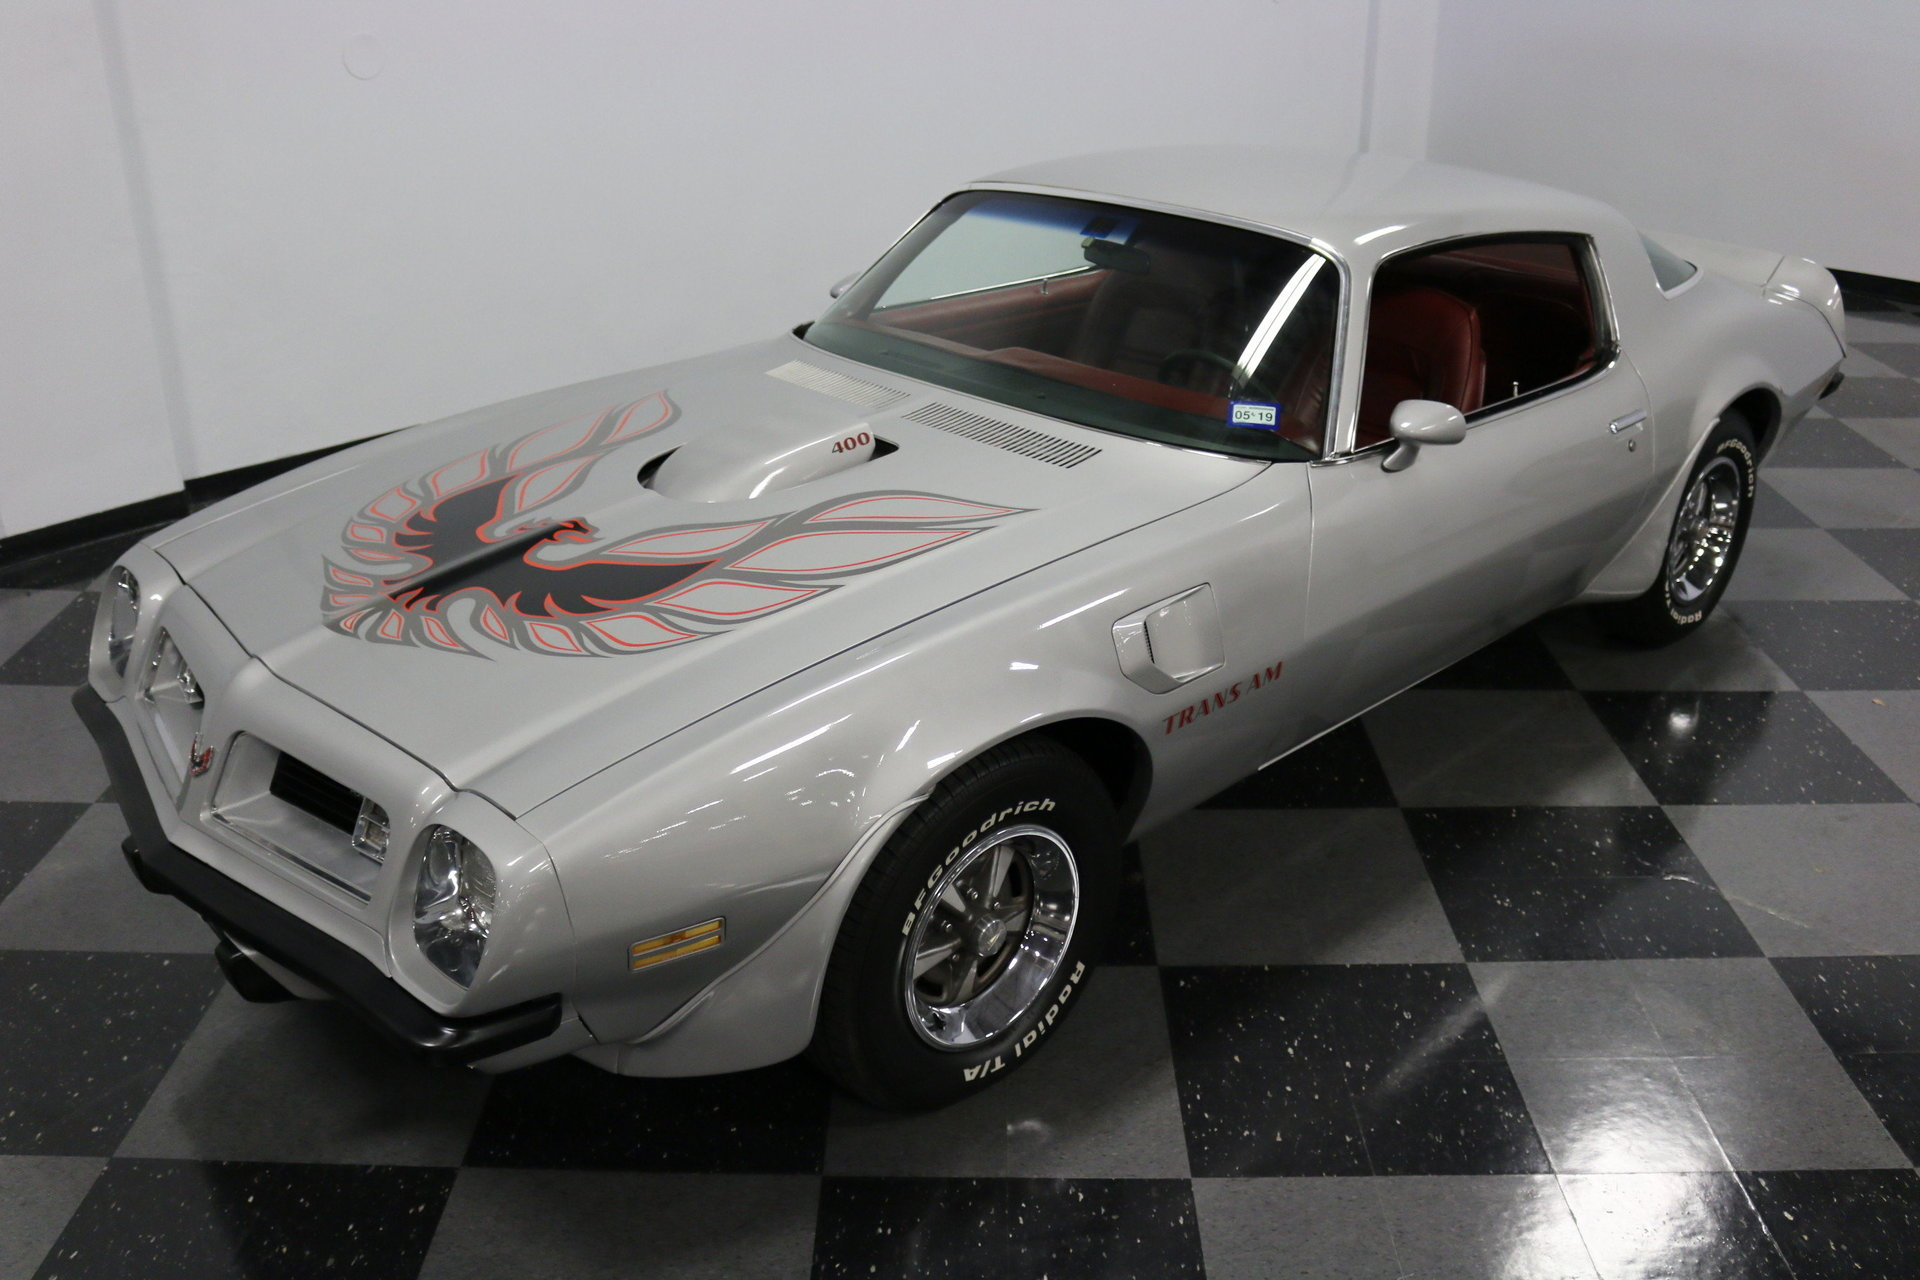 1975 Pontiac Firebird Streetside Classics The Nations Trusted Trans Am For Sale Spincar View Play Video 360